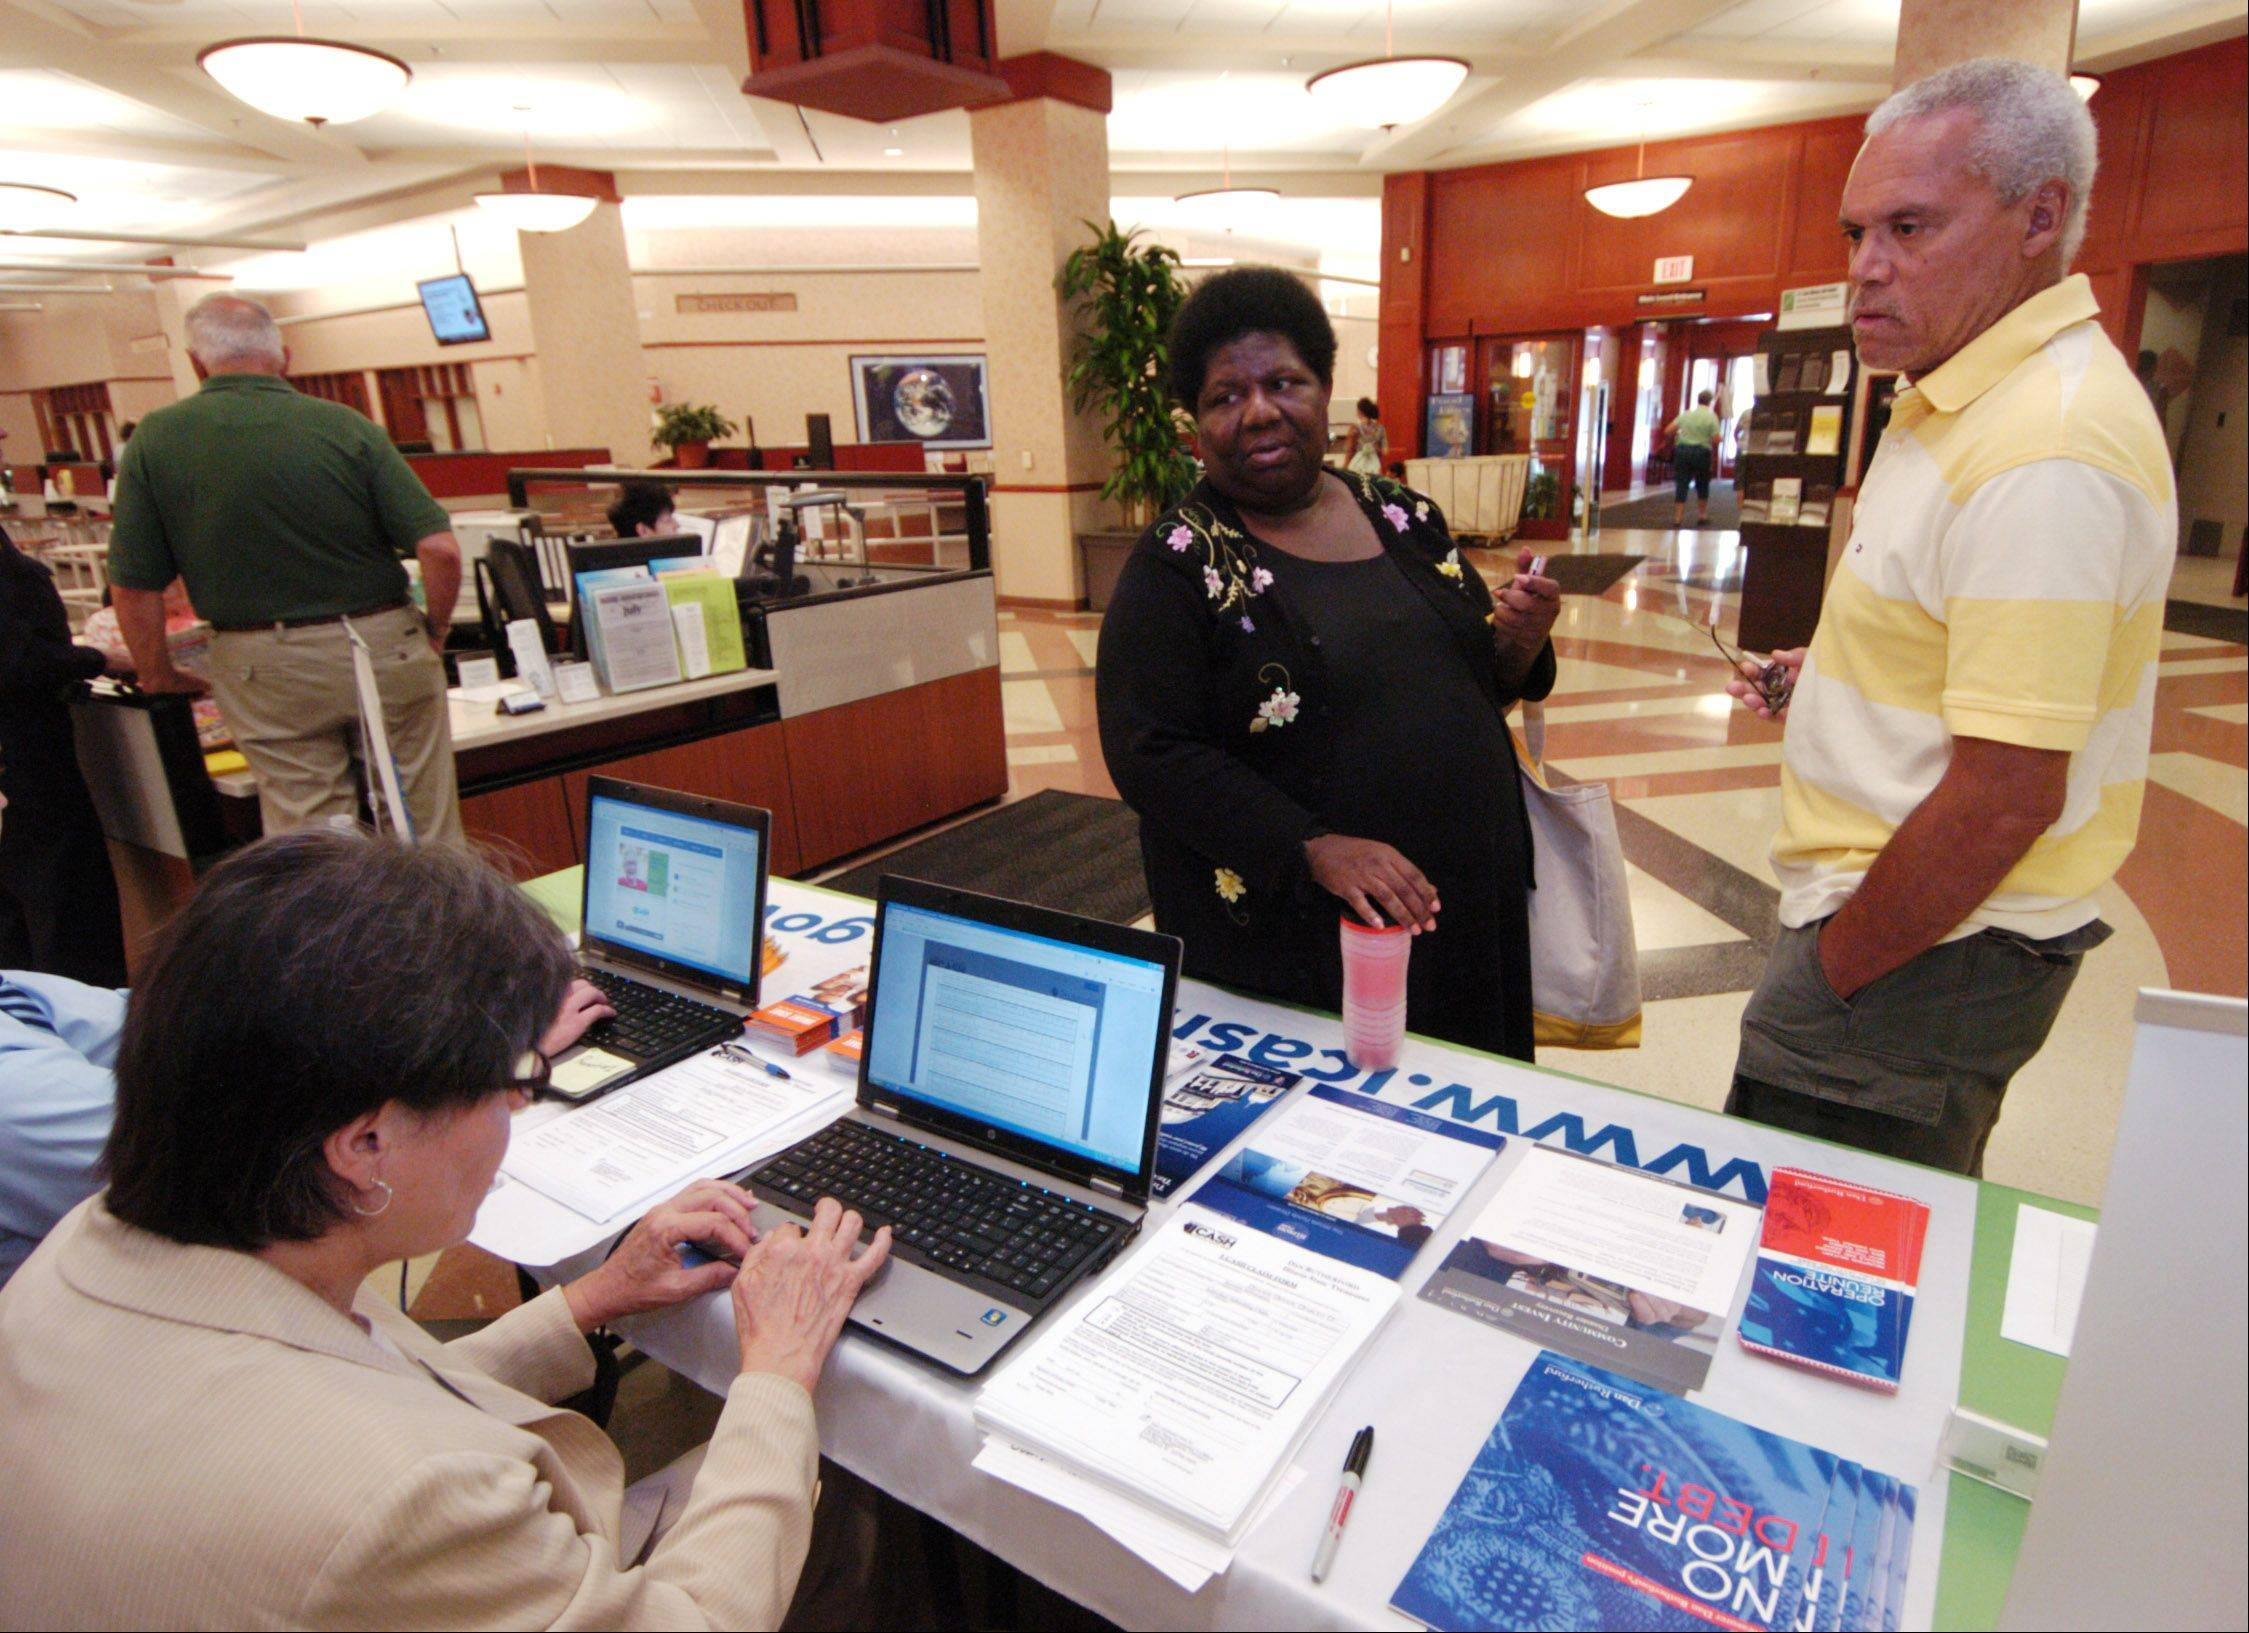 With the assistance of state Treasury Department marketing representative Barbara Chalko, seated, Jacqueline and William Rogers of Schaumburg check for unclaimed property through use of the I-Cash program website at the Schaumburg library.